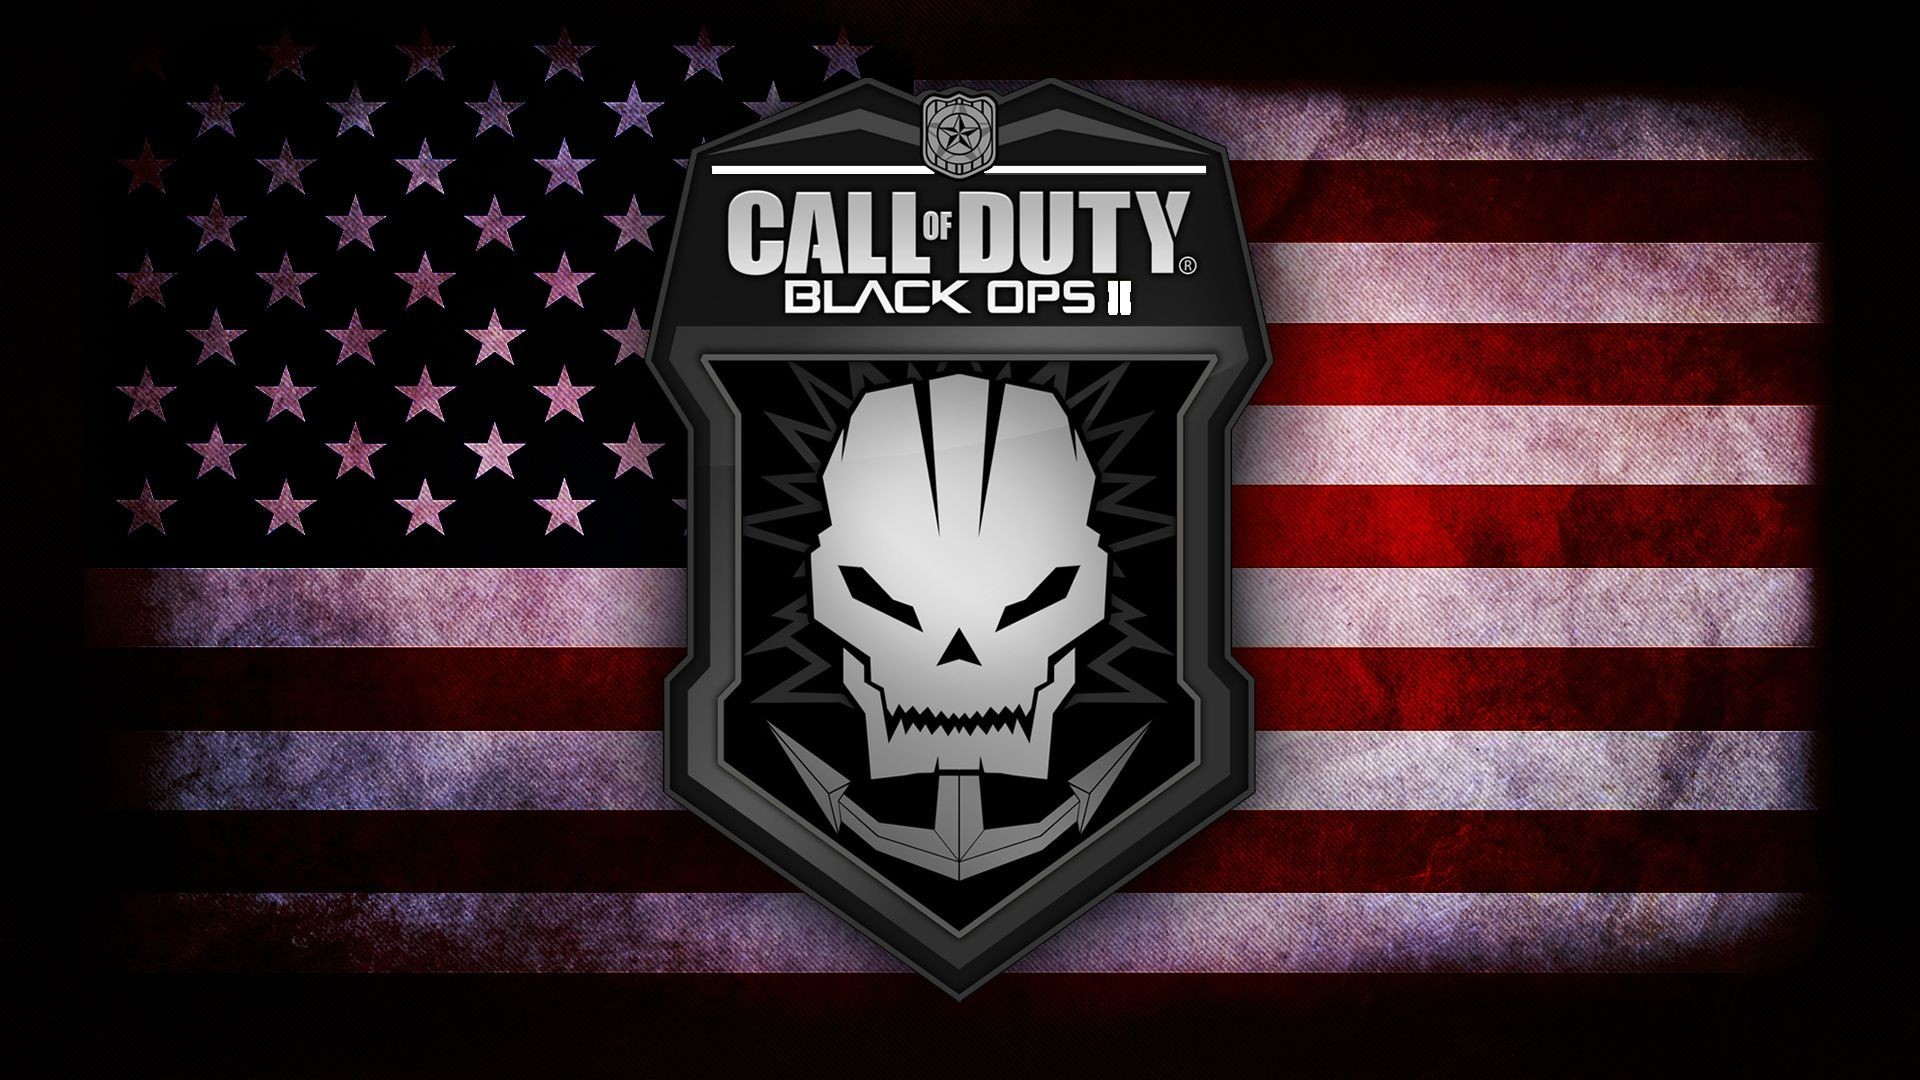 1920x1080 Black Ops 2 HD Backgrounds for PC